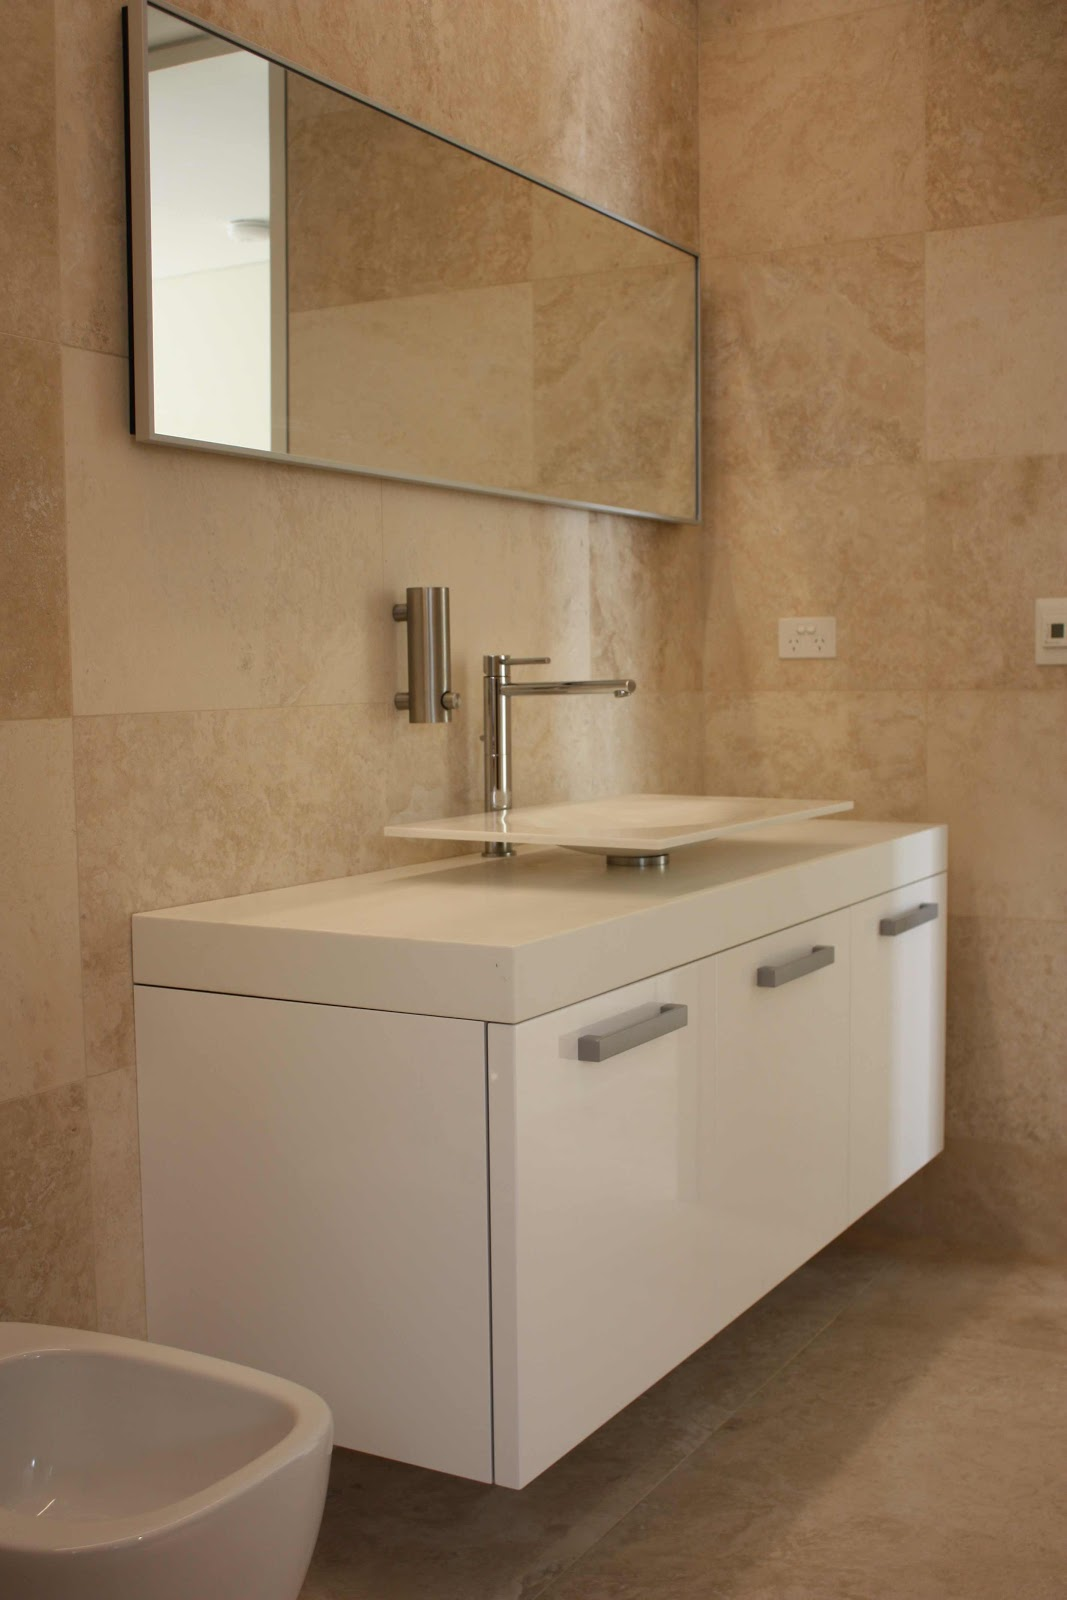 Minosa travertine bathrooms the natural choice modern for Travertine tile in bathroom ideas